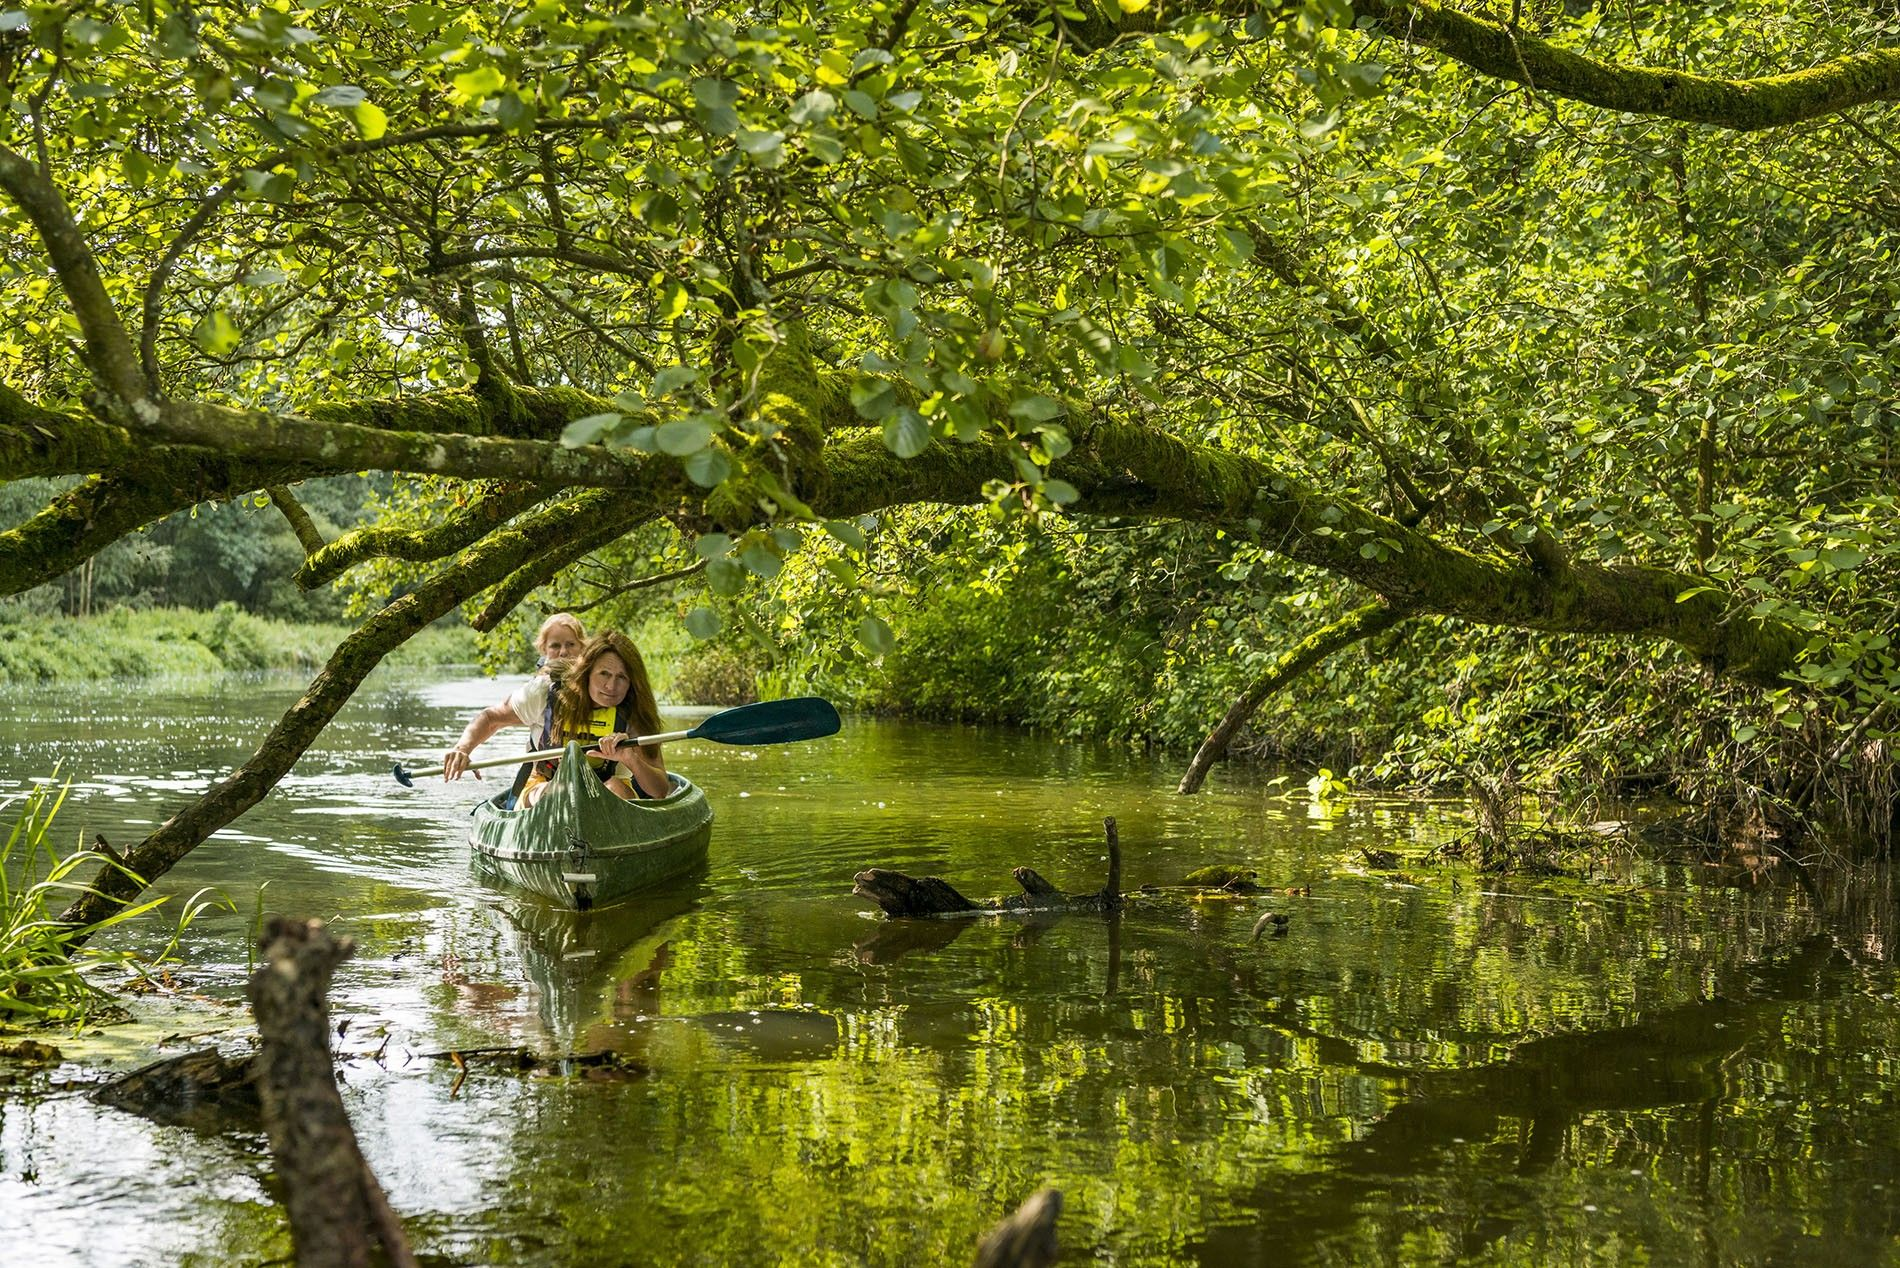 Hiking, paddling and outdoor cooking: discover forest bathing in Sweden's Skåne region